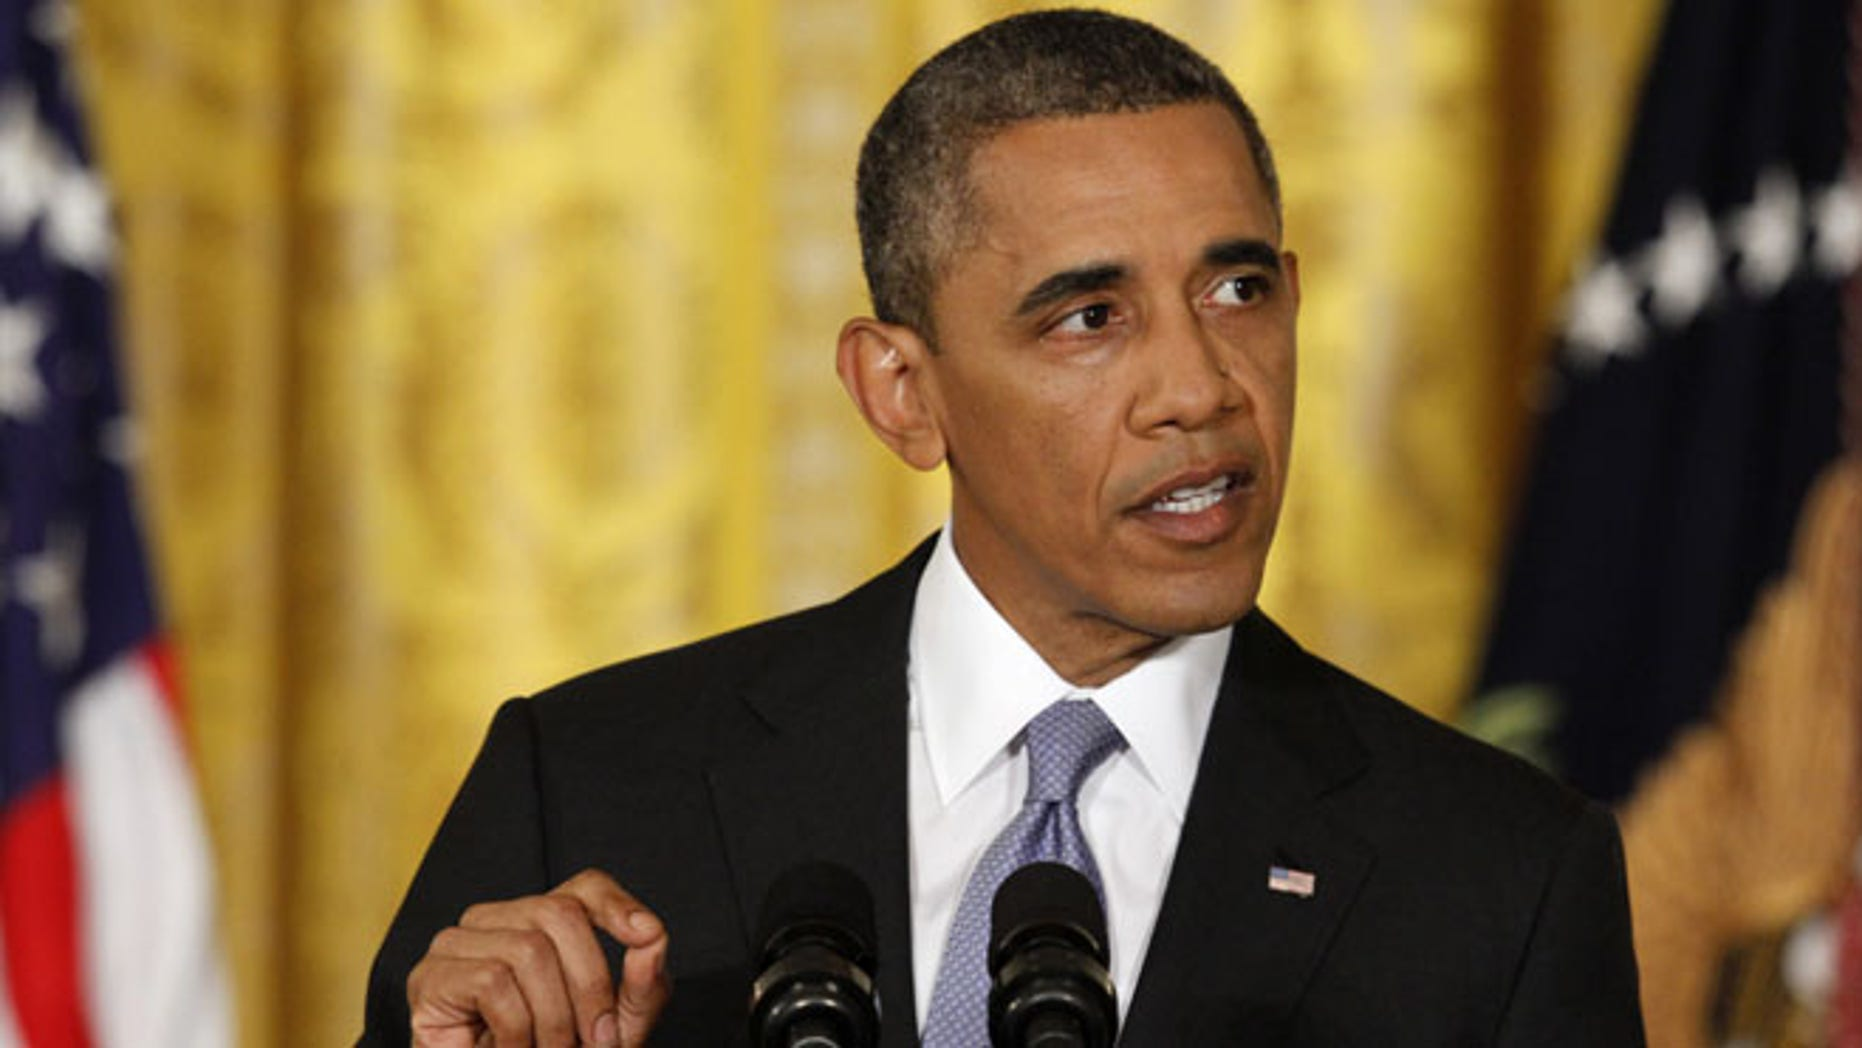 FILE: Aug. 9, 2013: President Obama speaks during a news conference in the East Room of the White House in Washington.